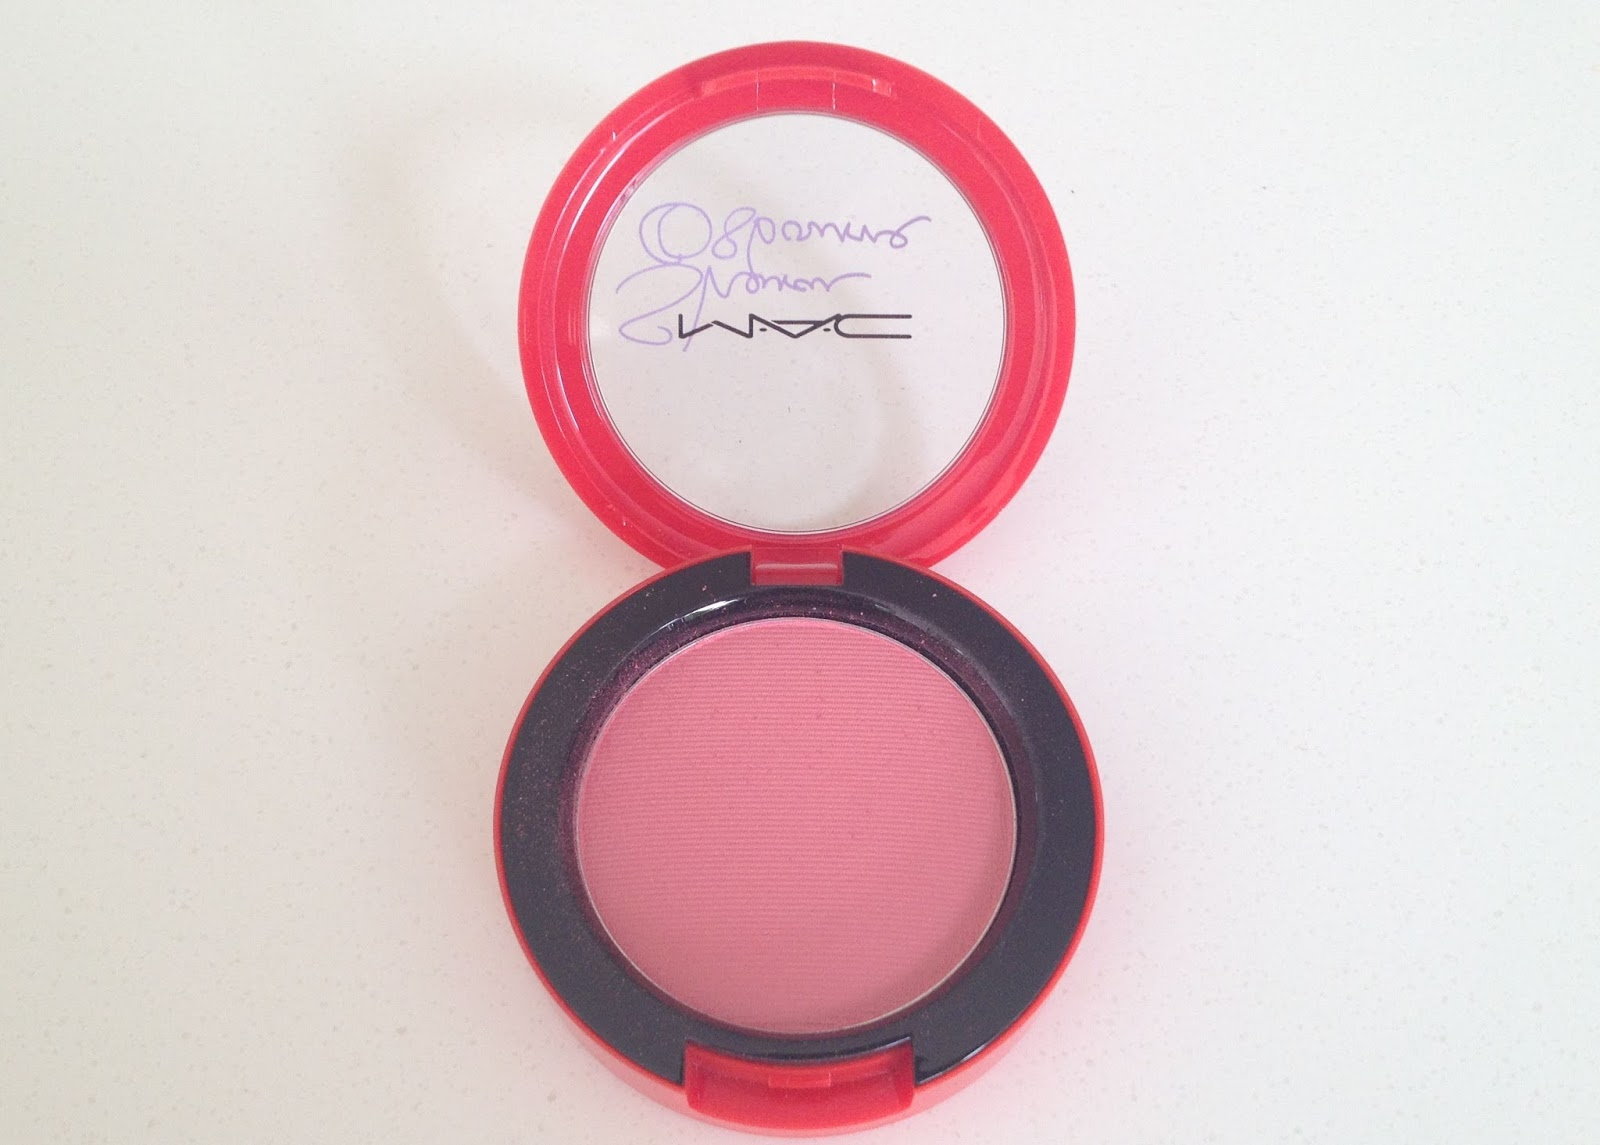 MAC Sharon Osbourne Peaches & Cream Powder Blush